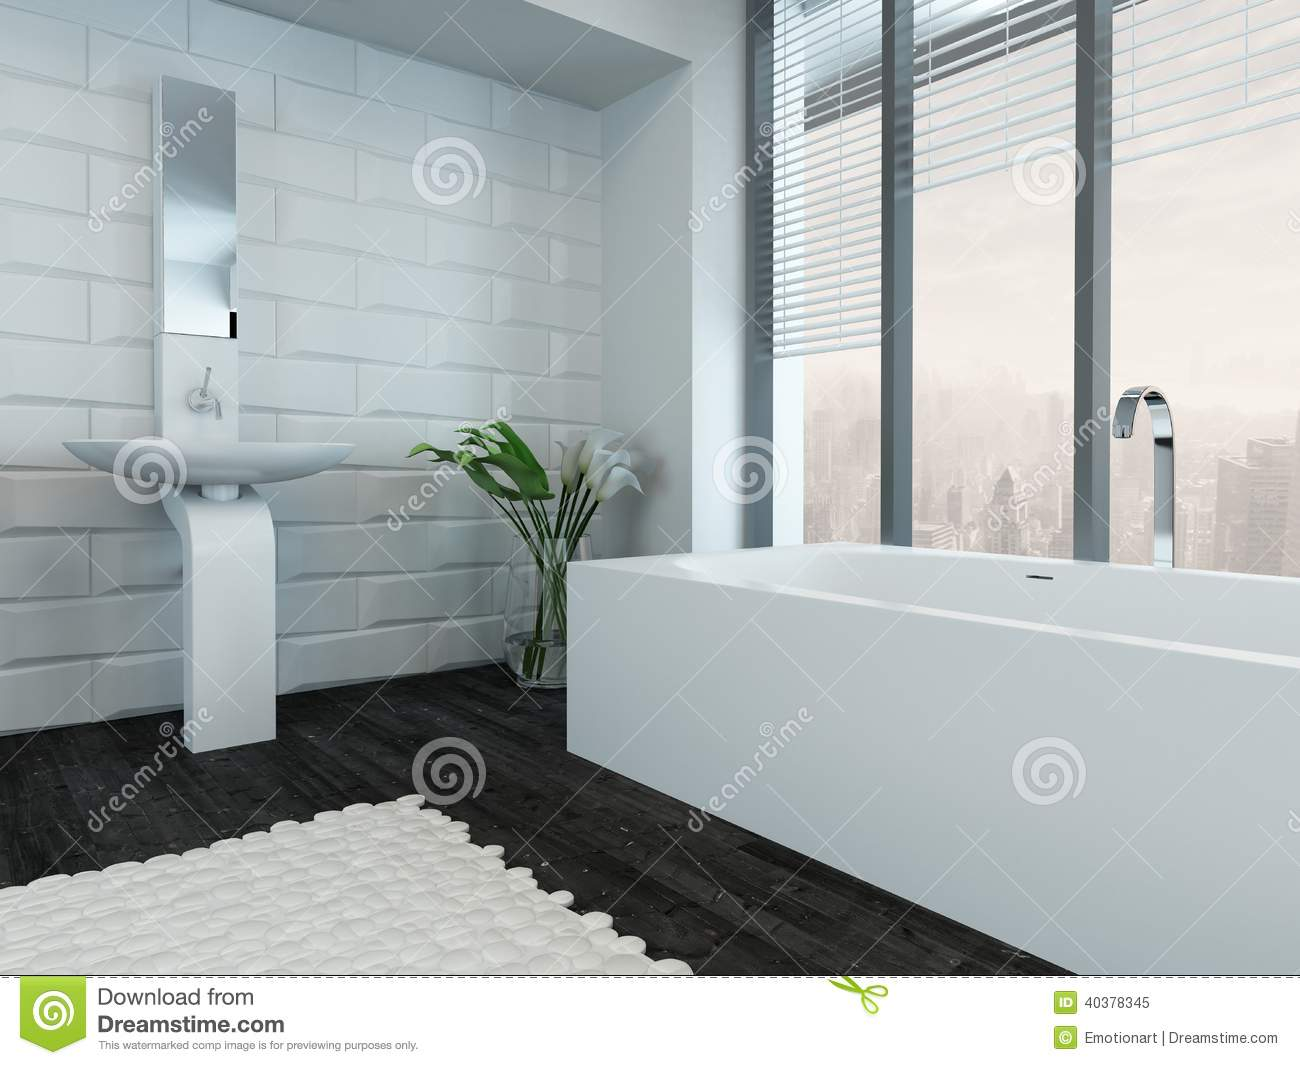 Modern Luxury Bathroom Interior With Bathtub Stock Image - Image of ...